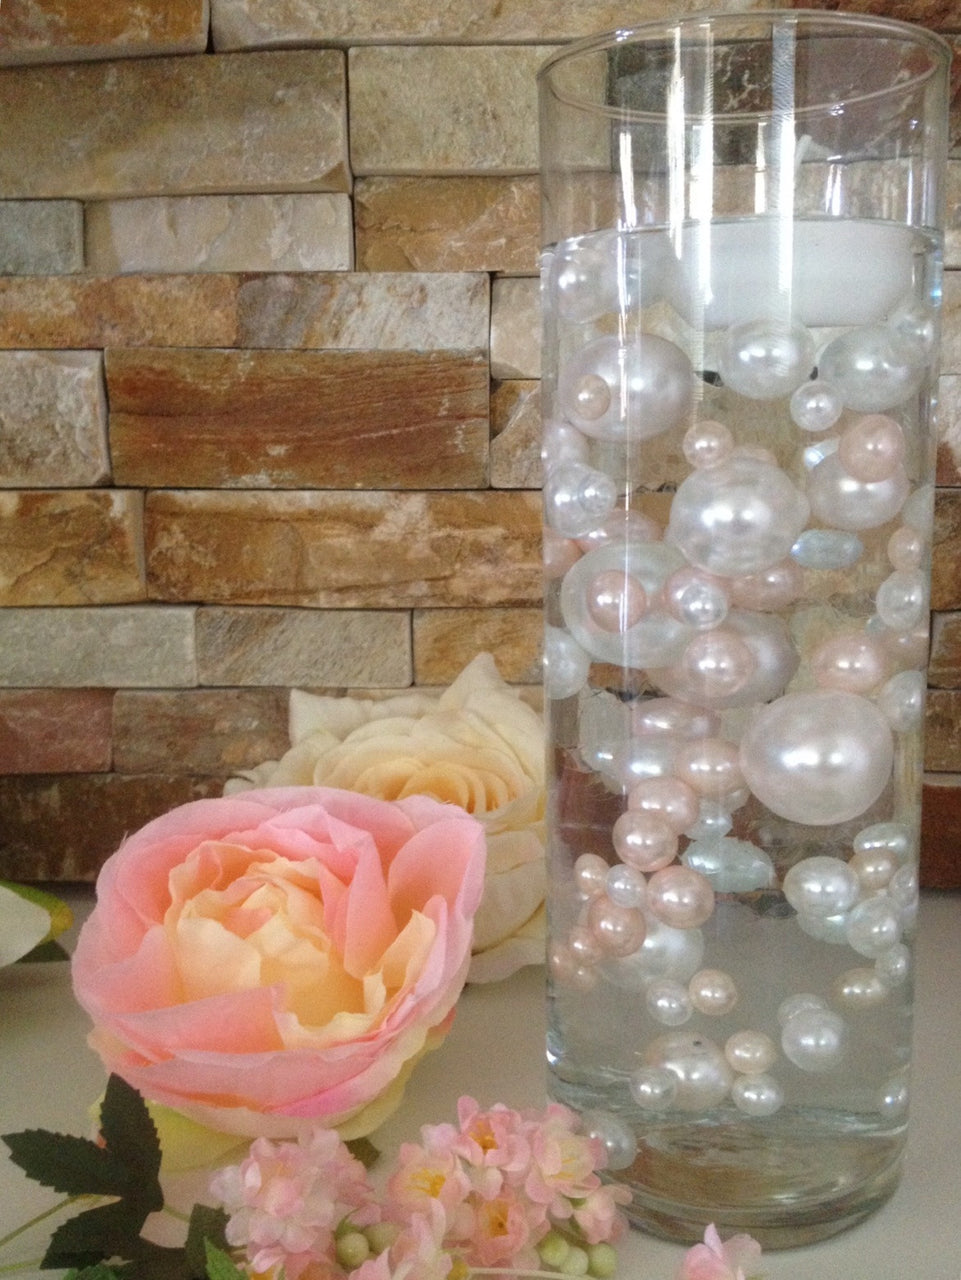 DIY Floating Pearl Centerpiece Vase Filler Pearls Blush/White Pearls 80 Jumbo & Mix Size Pearls, No Hole Pearls